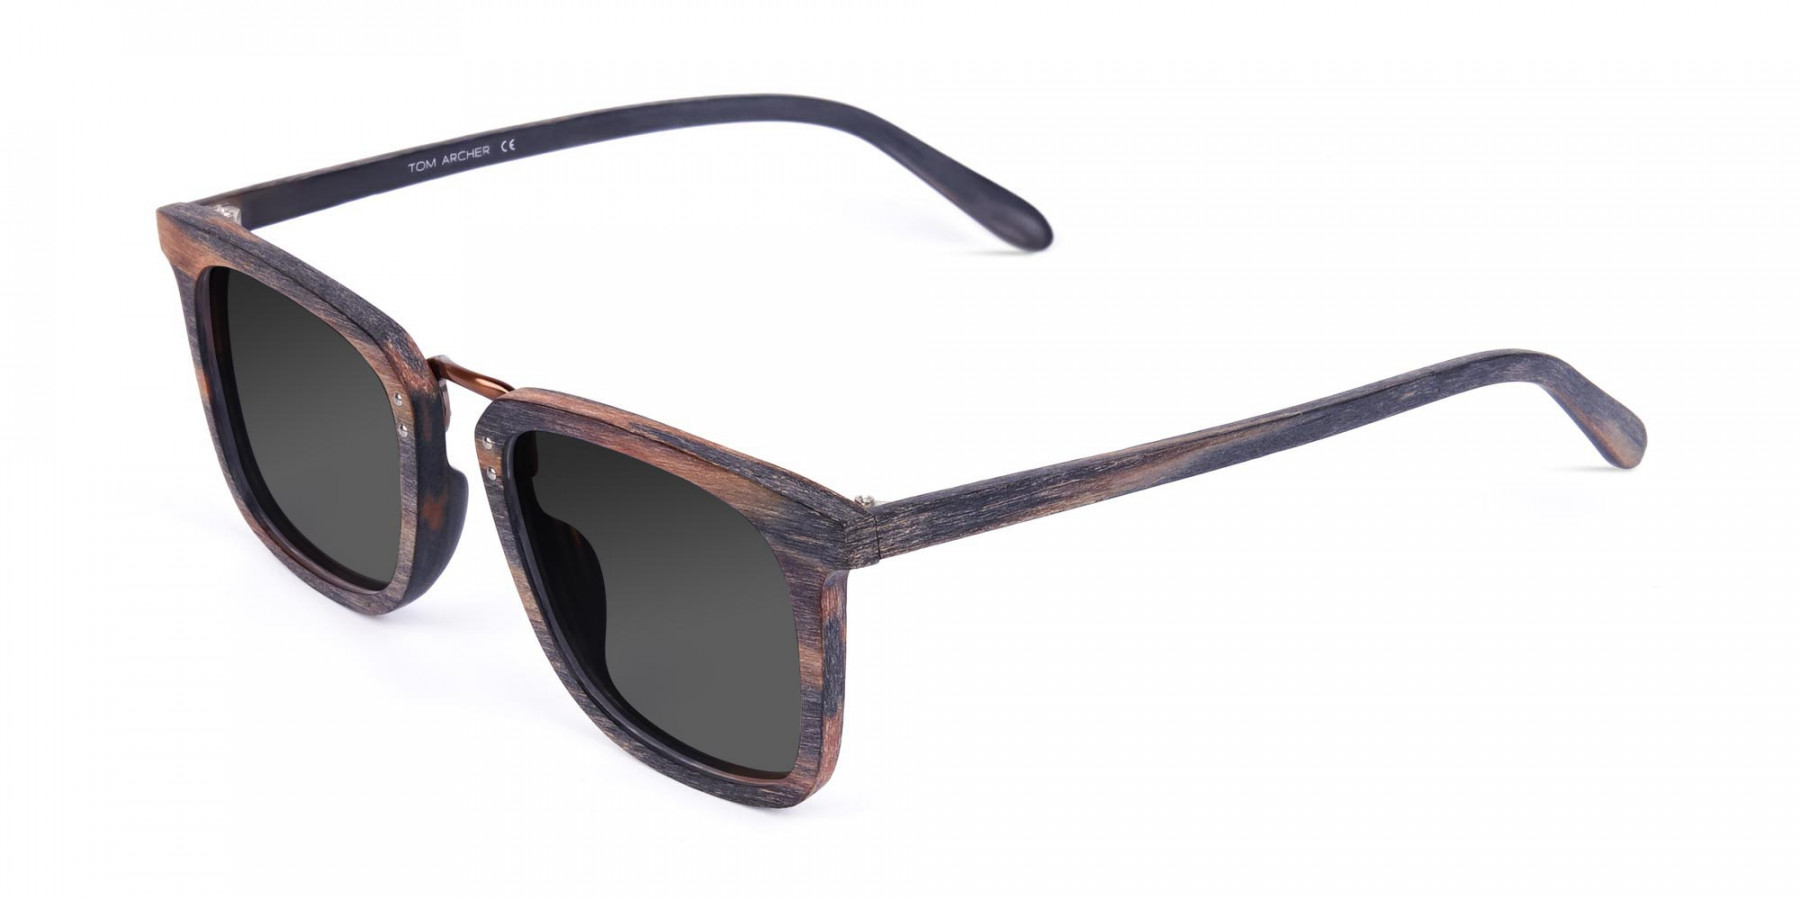 Wooden-Tortoise-Square-Sunglasses-with-Brown-Tint-3